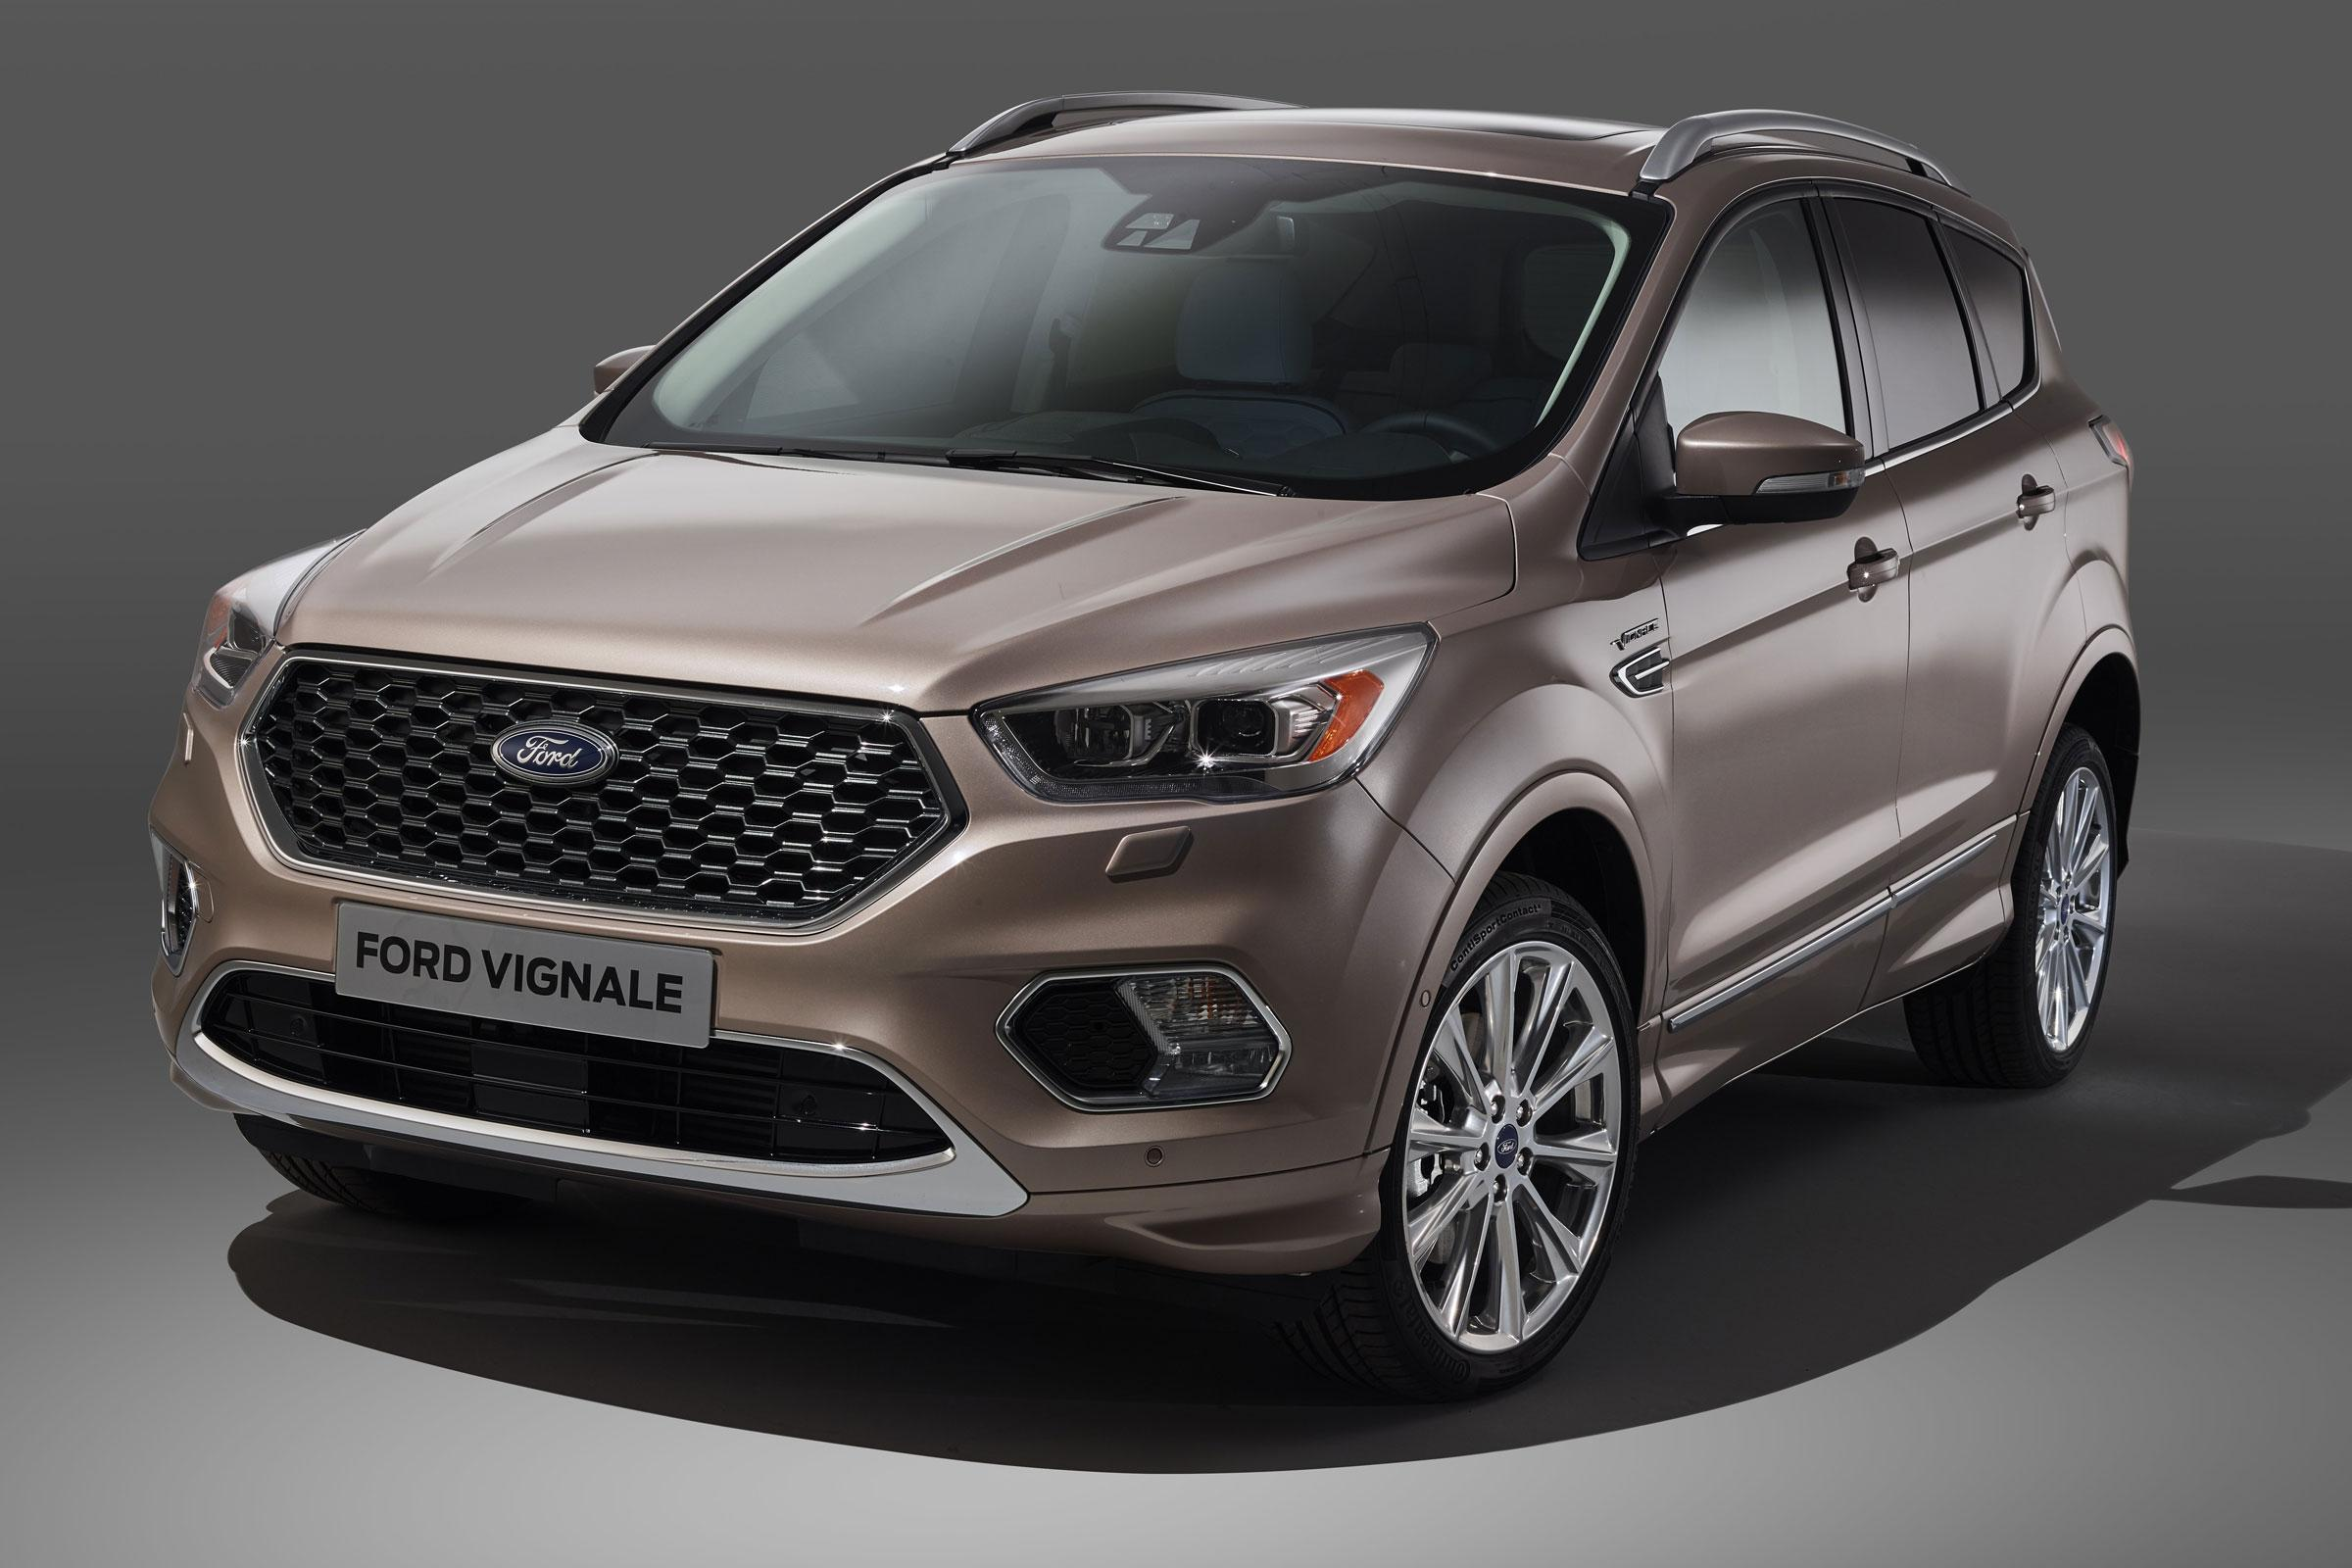 New Ford Kuga Vignale revealed in production form | Auto Express